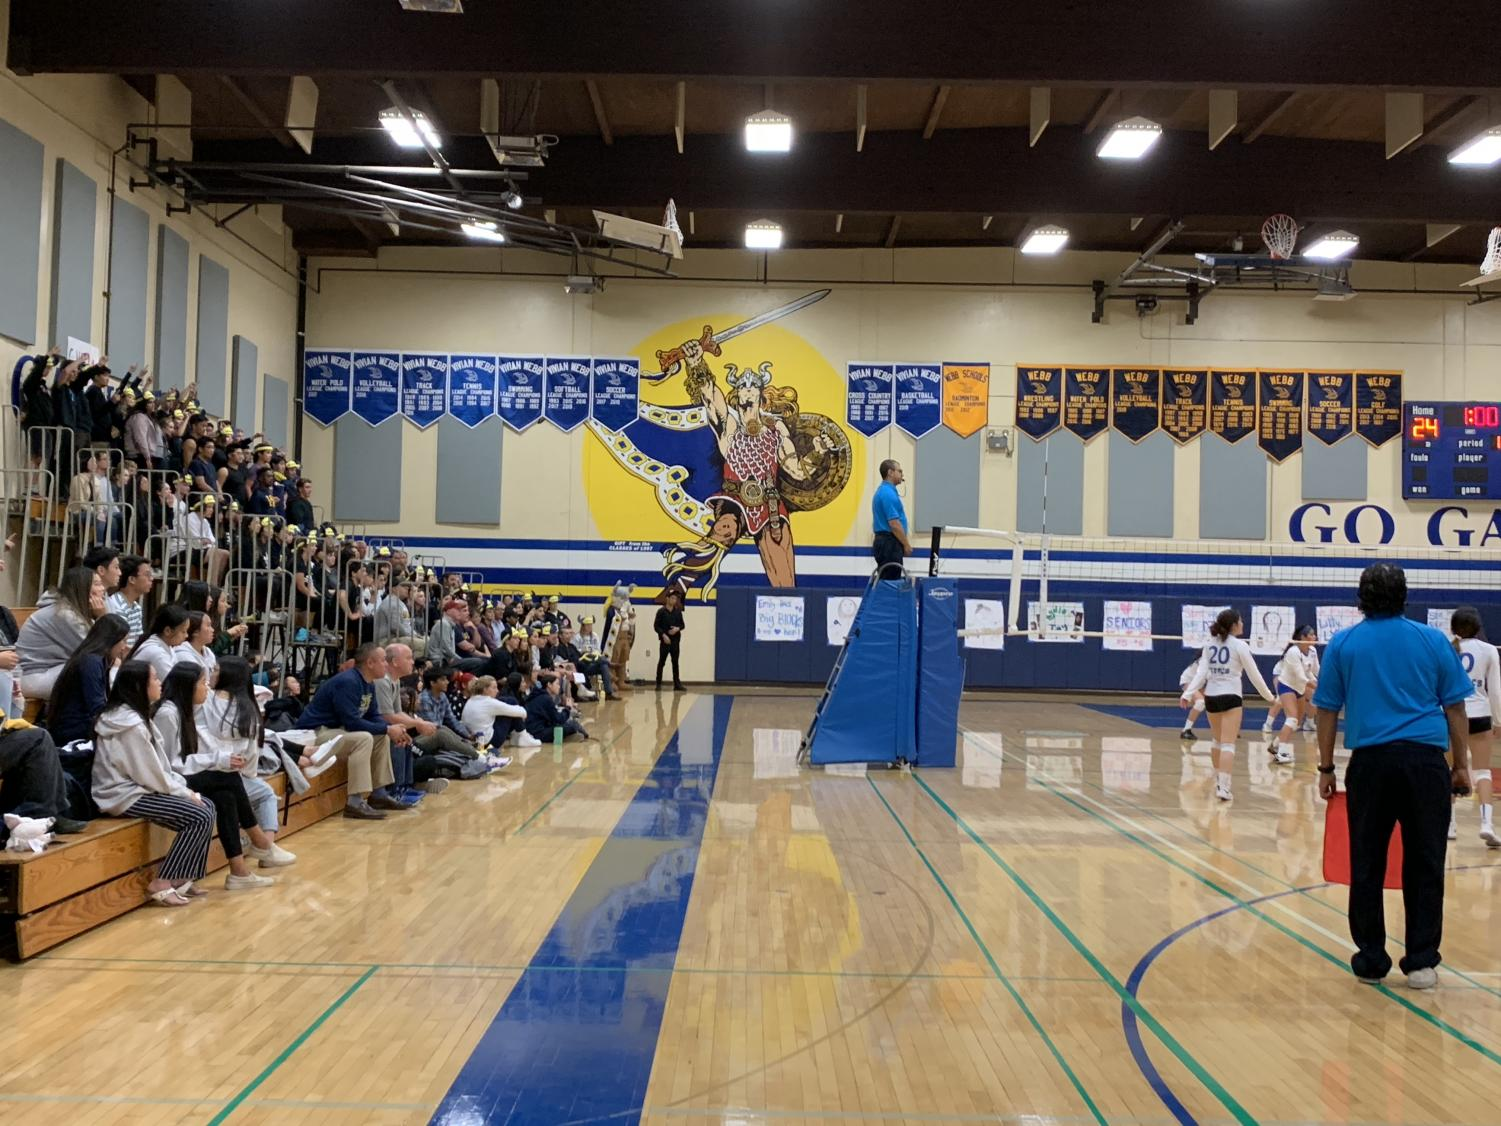 Webb students pack the stands and cheer on the Gauls.